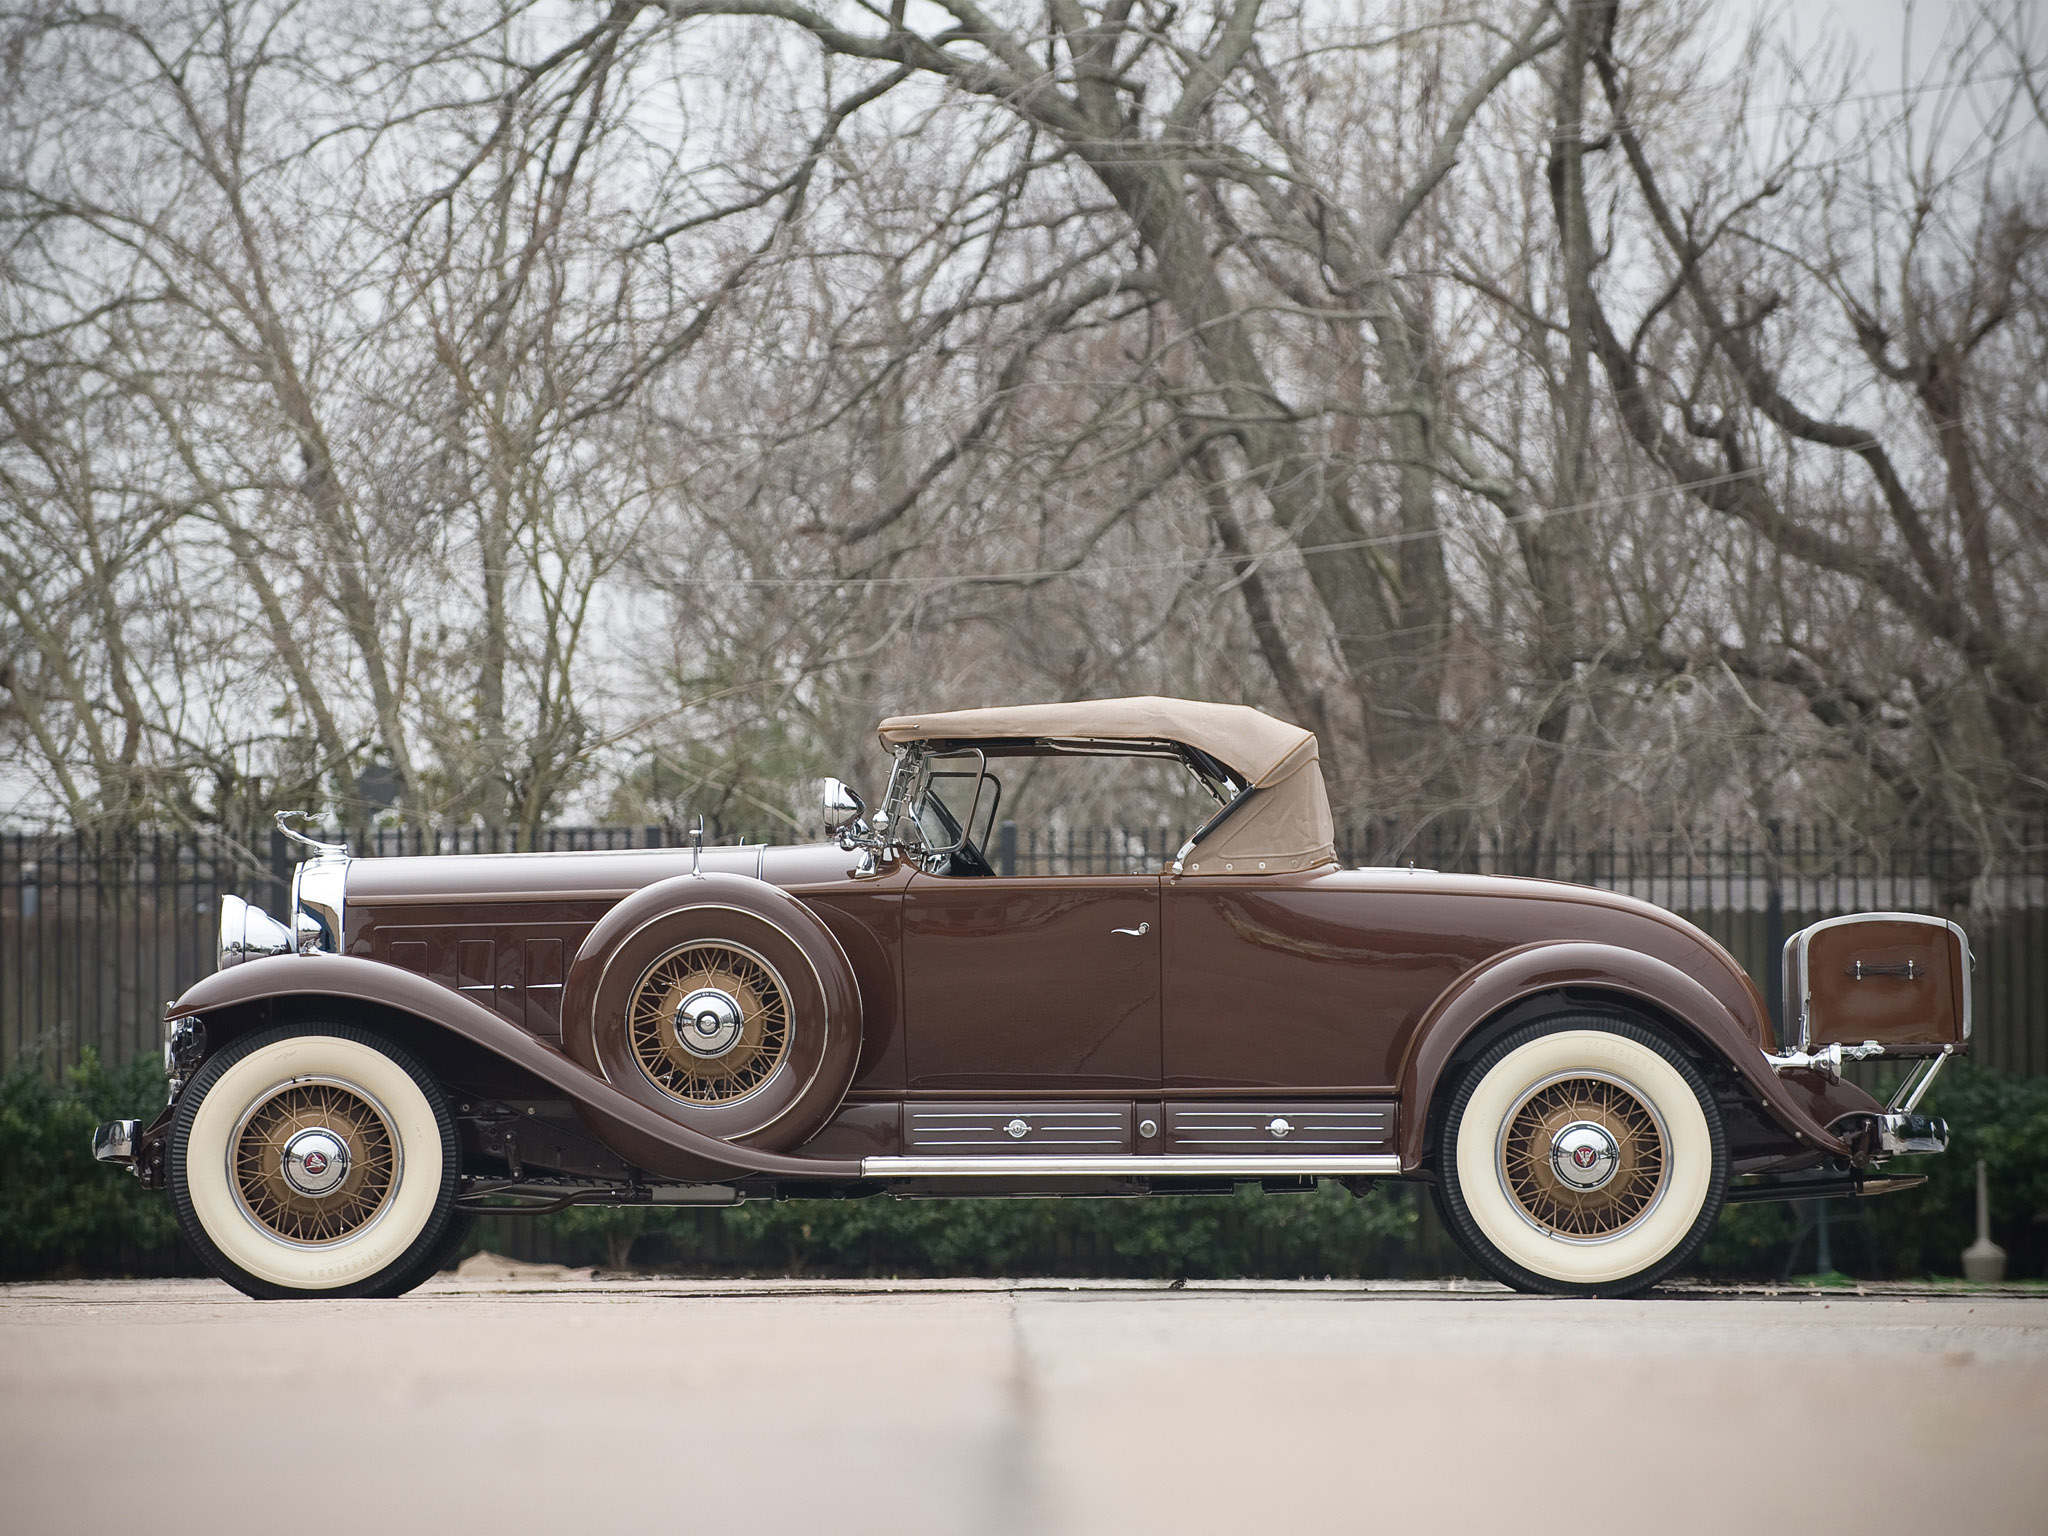 Amazing 1930 Cadillac V16 Roadster Pictures & Backgrounds